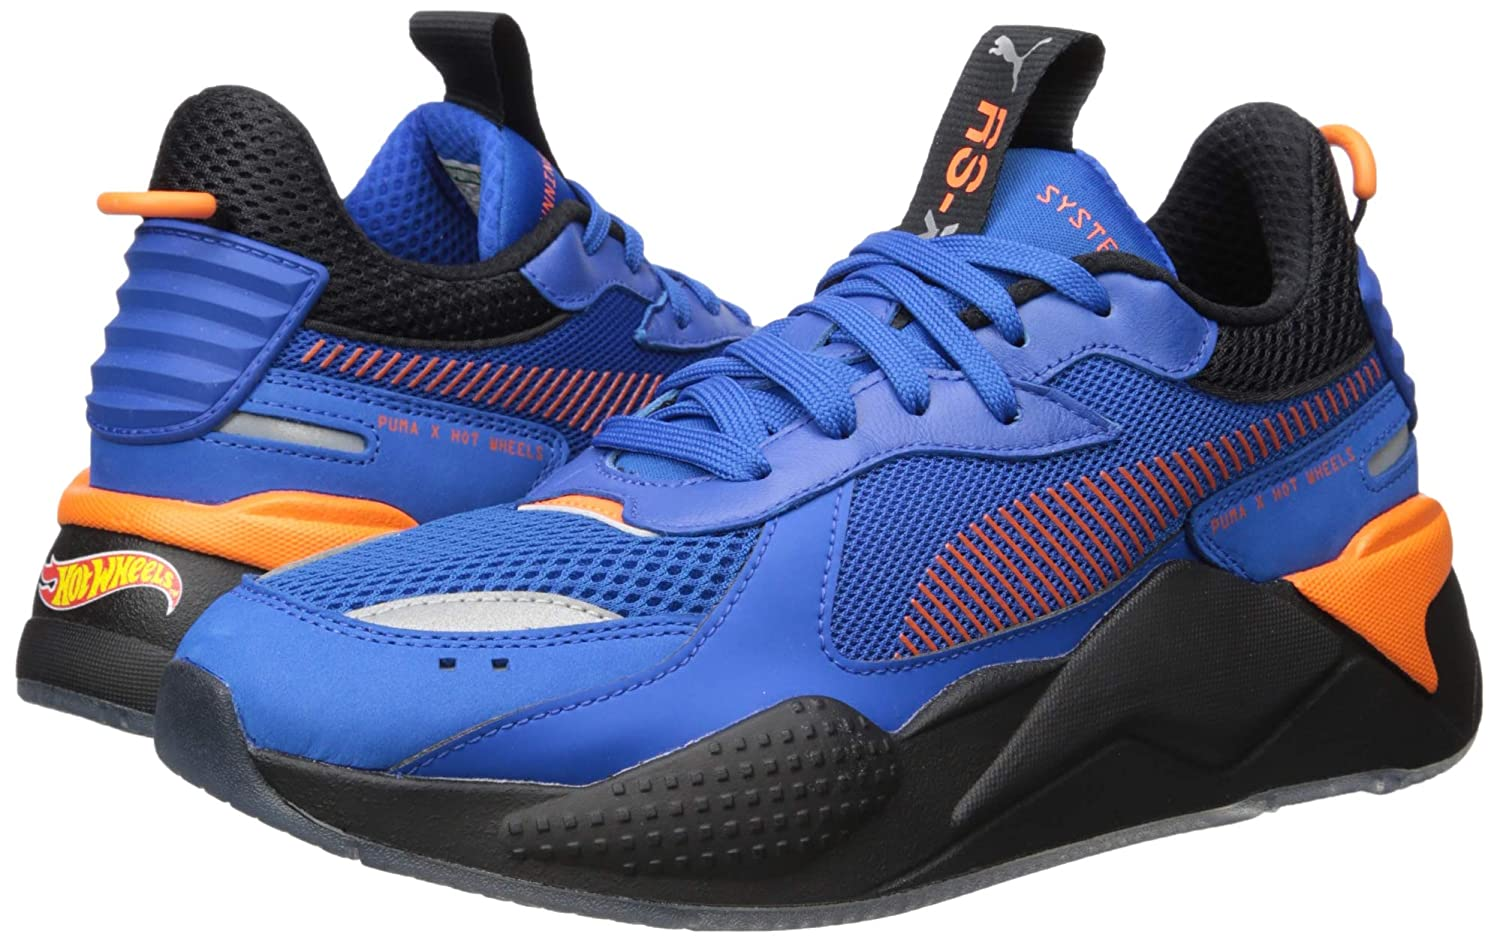 49c0840e06d Amazon.com | PUMA Men's Rs-x Toys Hotwheels 16 Sneaker | Fashion Sneakers